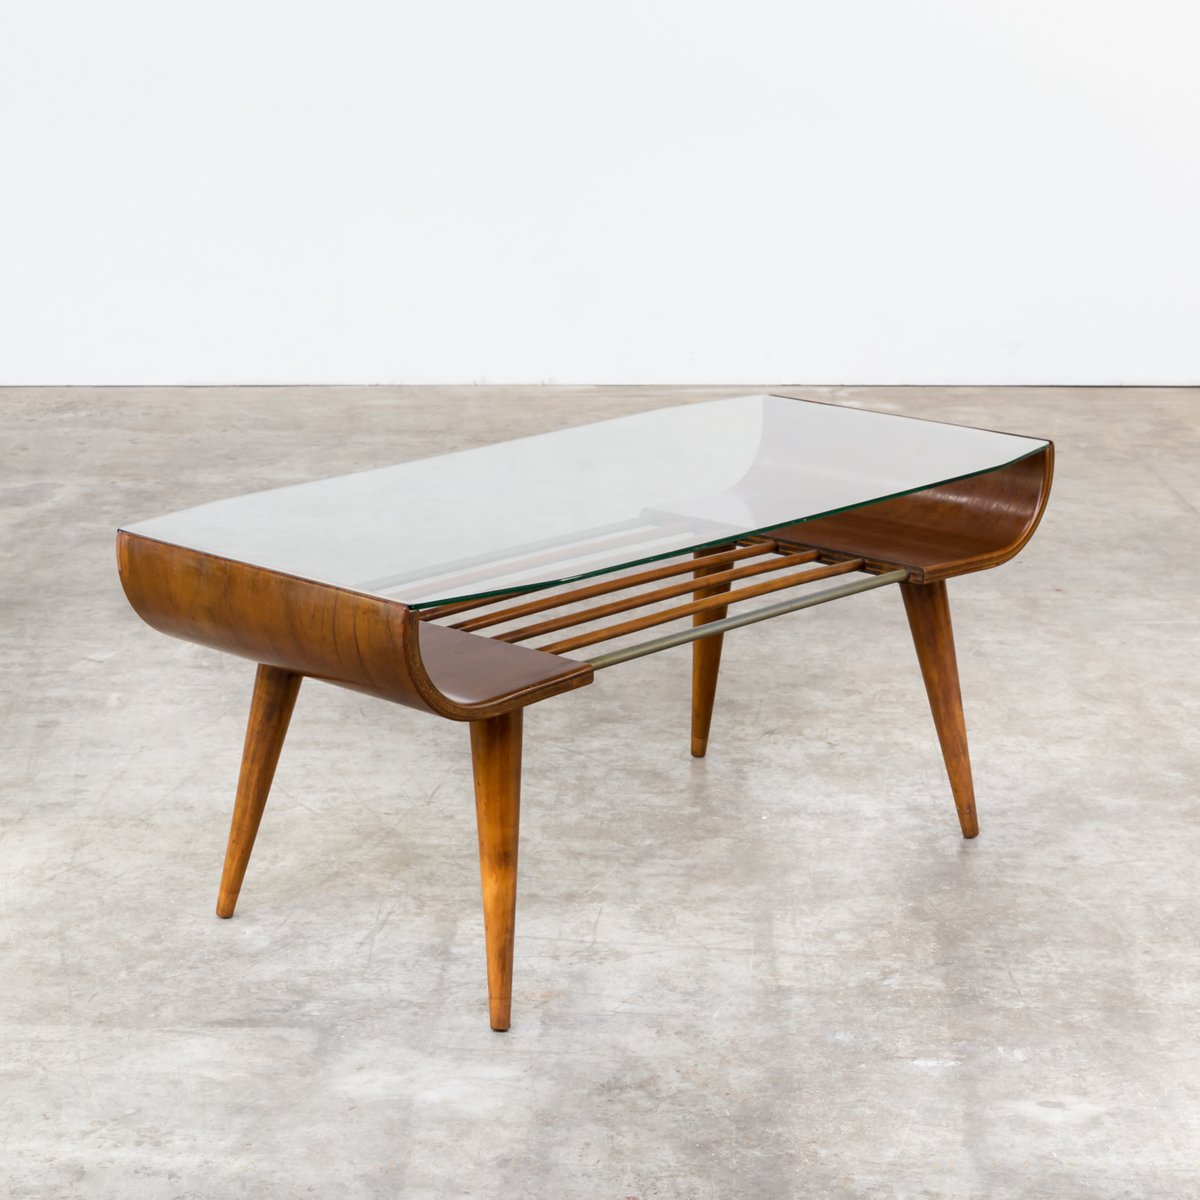 Vintage Plywood Glass Coffee Table By Cor Alons For Gouda Den Boer For Sale At Pamono